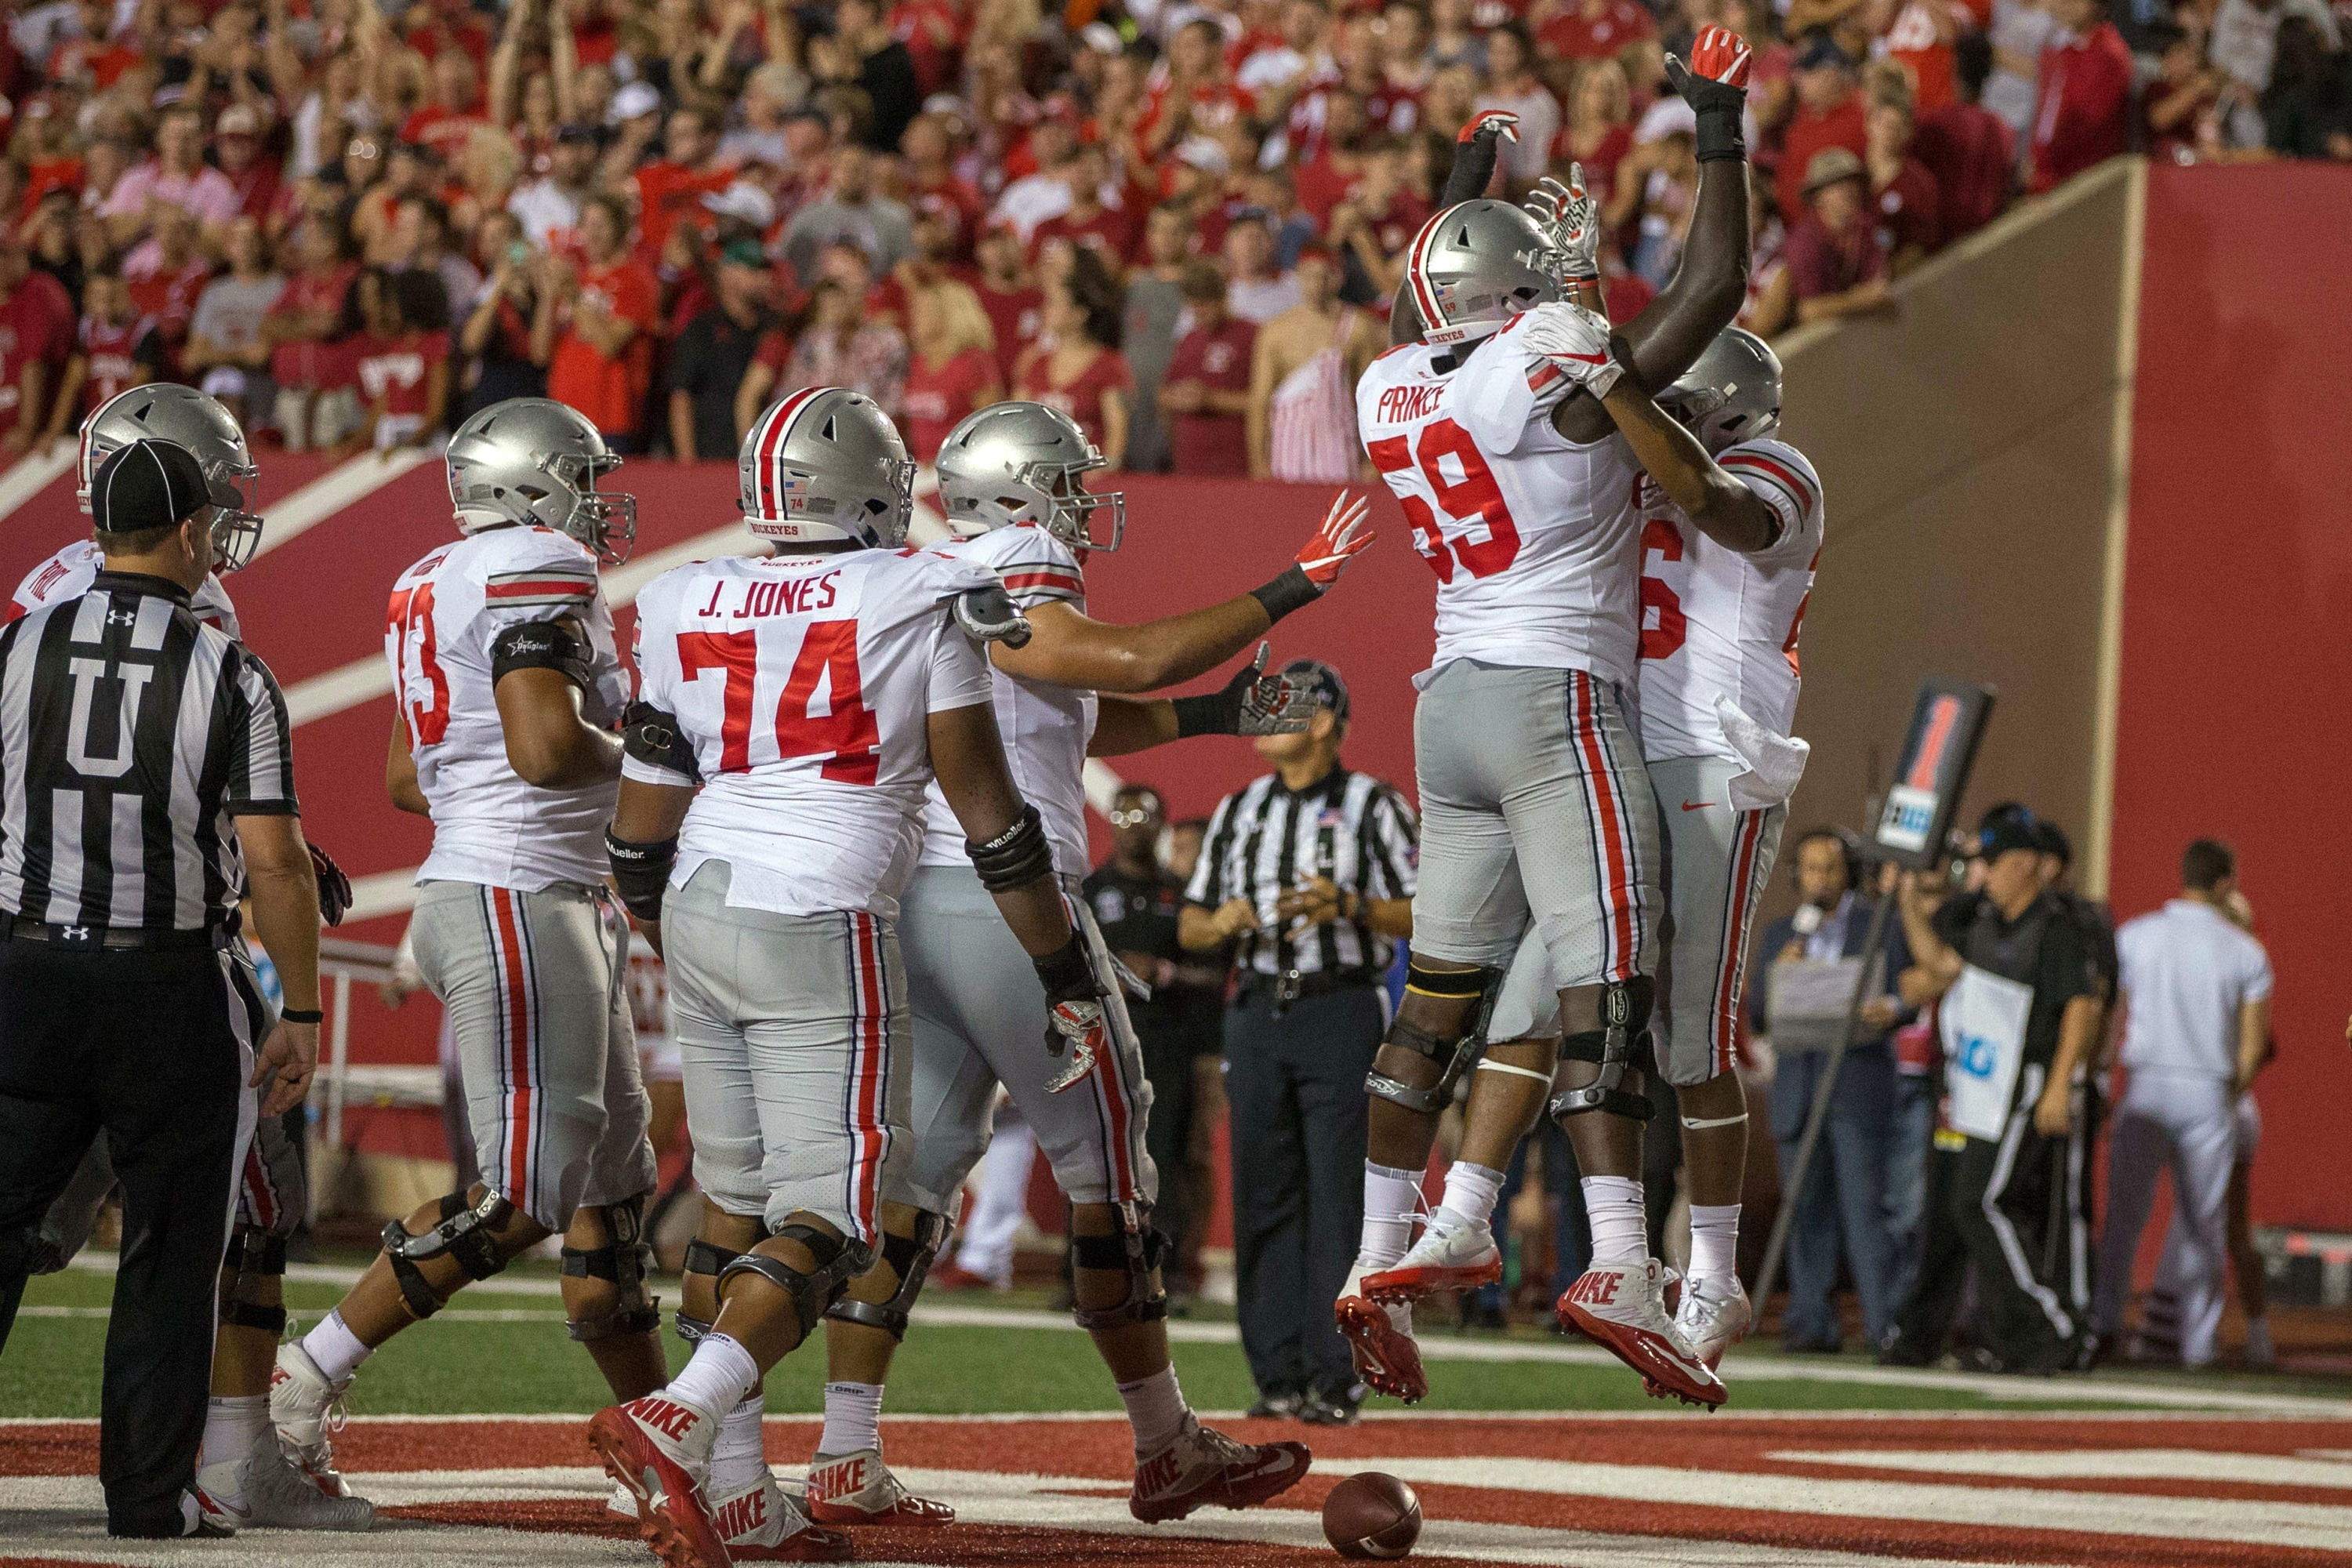 Aug 31, 2017; Bloomington, IN, USA; Ohio State Buckeyes running back Antonio Williams (26) celebrates his touchdown with offensive lineman Isaiah Prince (59) in the second quarter of the game Indiana Hoosiers at Memorial Stadium. Mandatory Credit: Trevor Ruszkowski-USA TODAY Sports